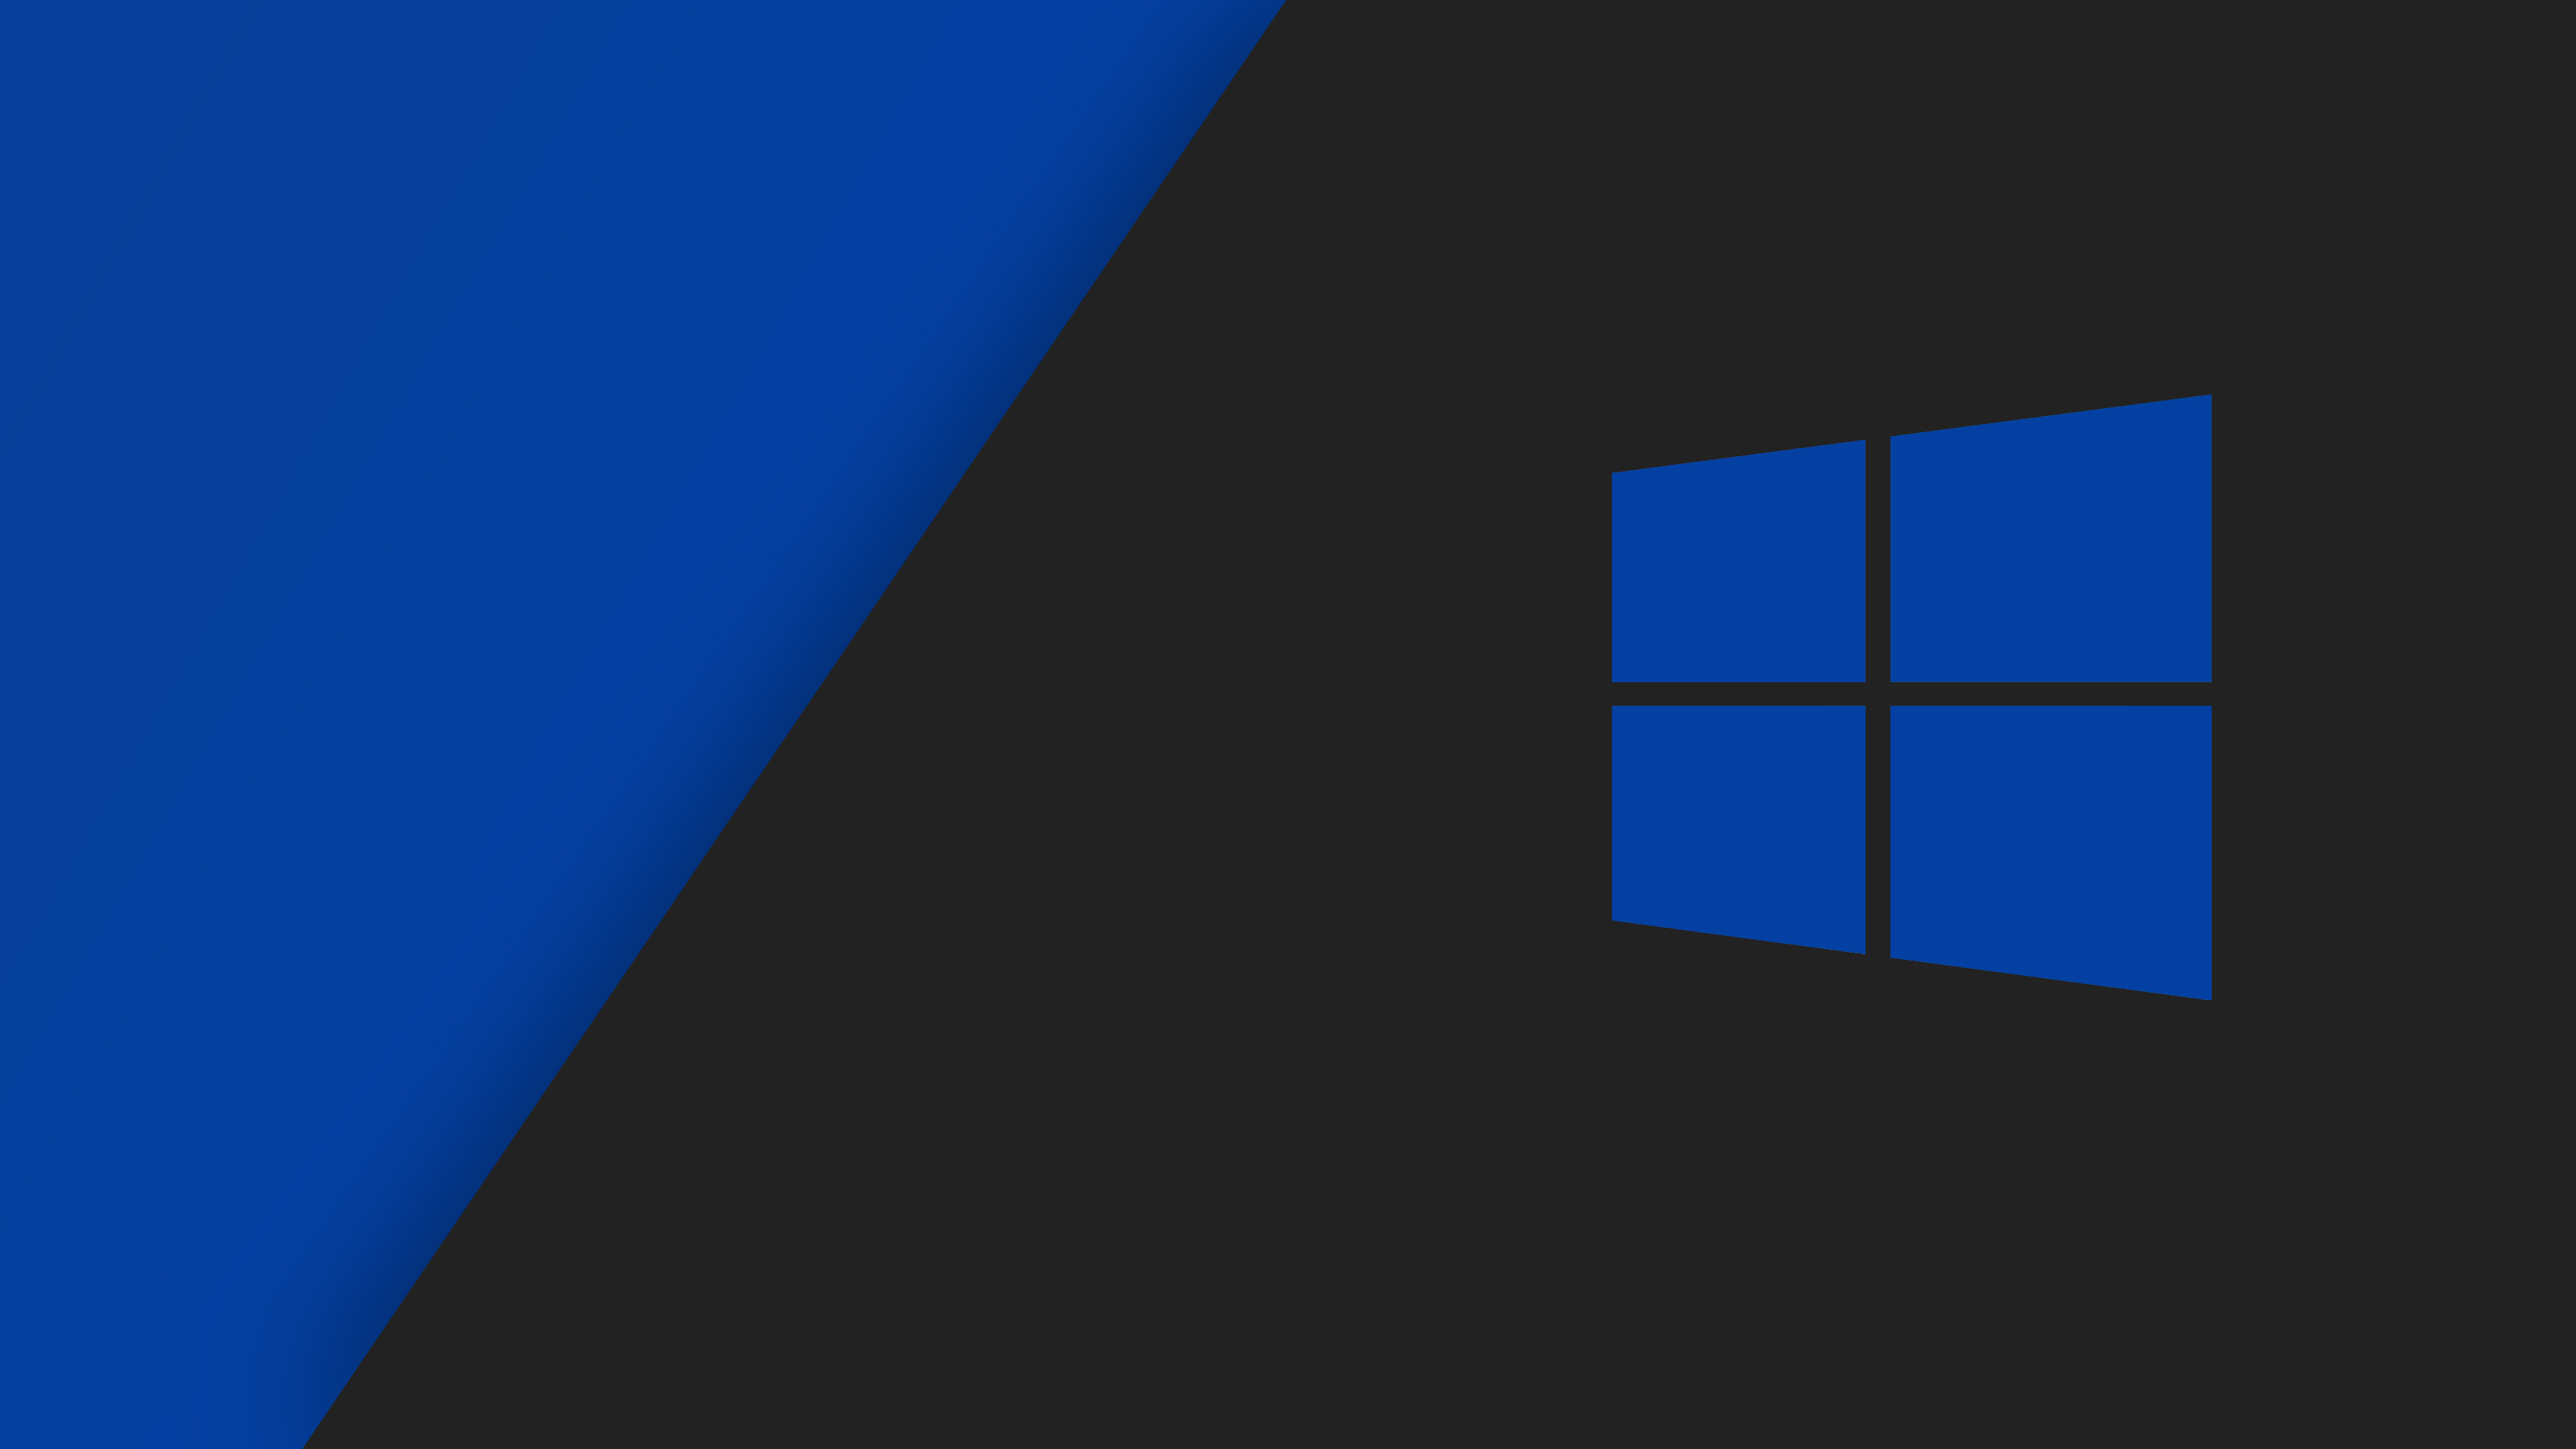 Wallpaper desktop windows 10